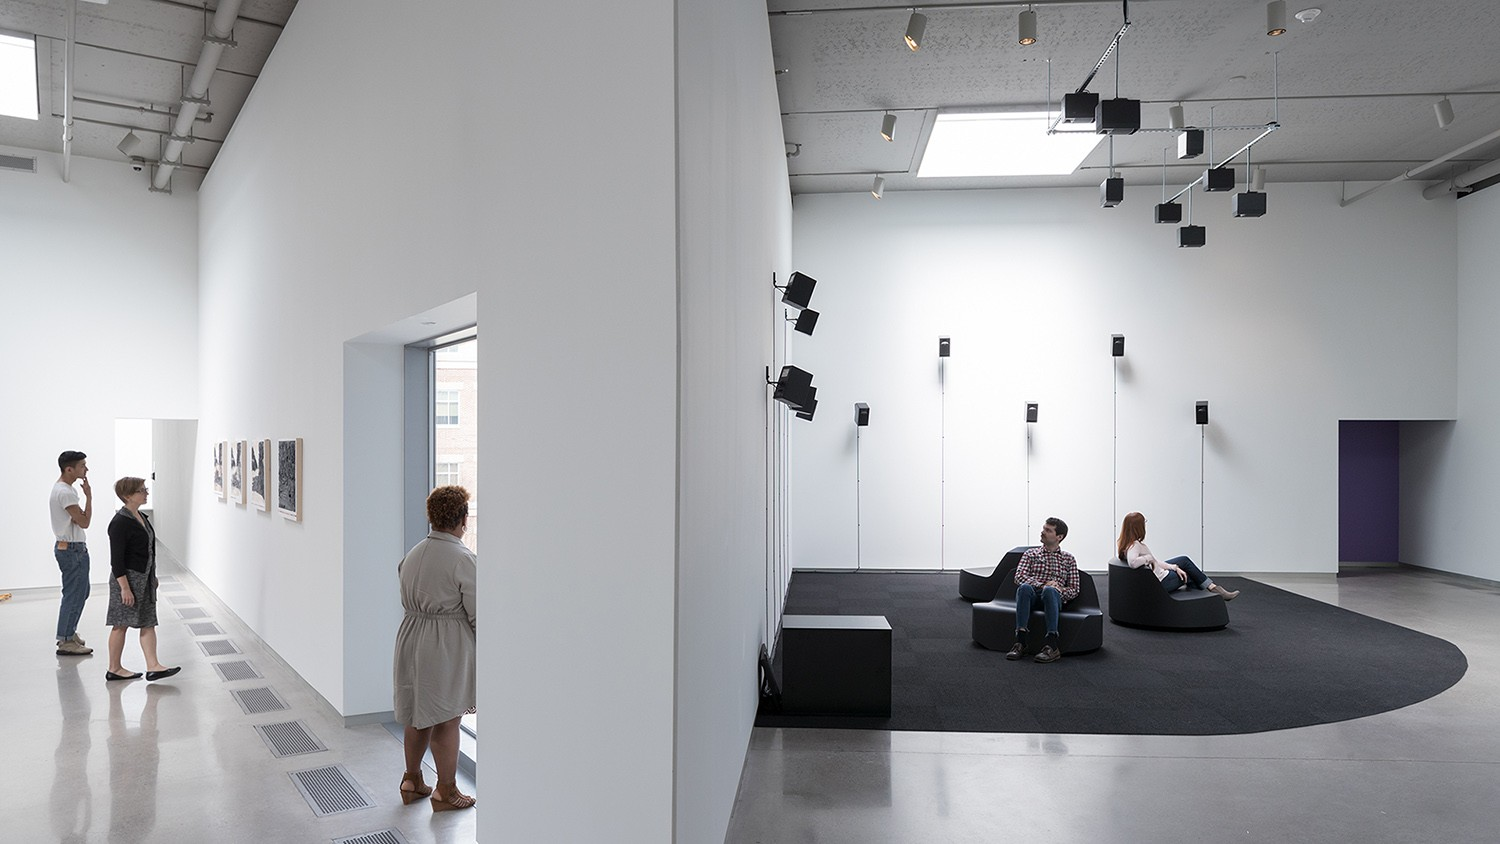 https://s3.us-east-2.amazonaws.com/steven-holl/uploads/projects/project-images/IwanBaan_ICA_VCU_ 18-03SHA3527_WH.jpg